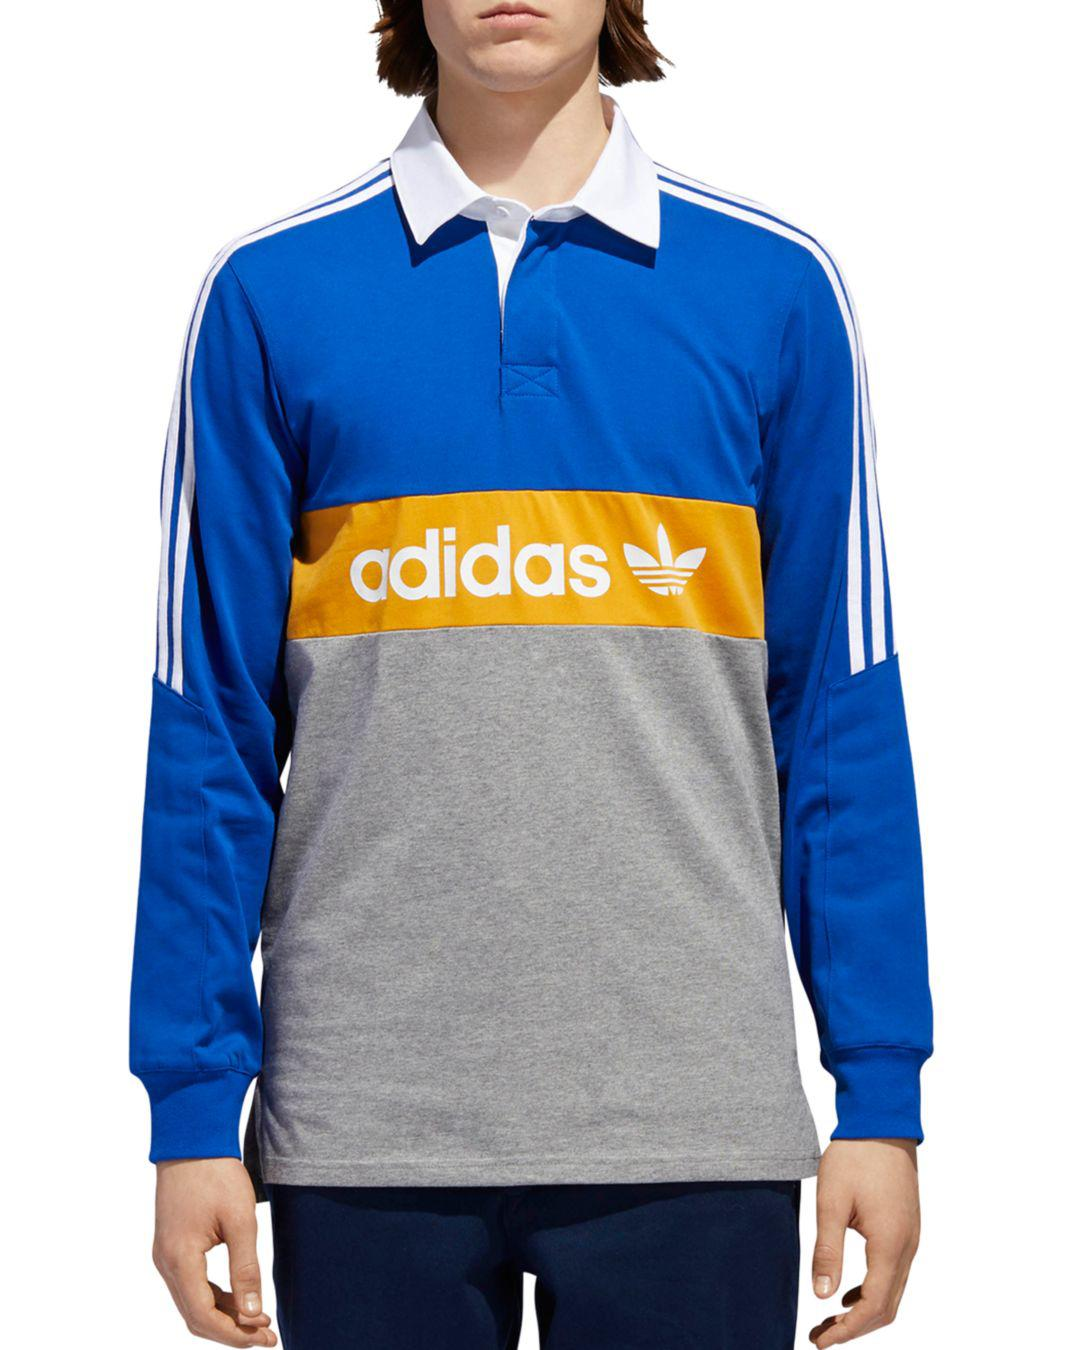 adidas Originals Heritage Rugby Polo Shirt in Blue for Men - Lyst